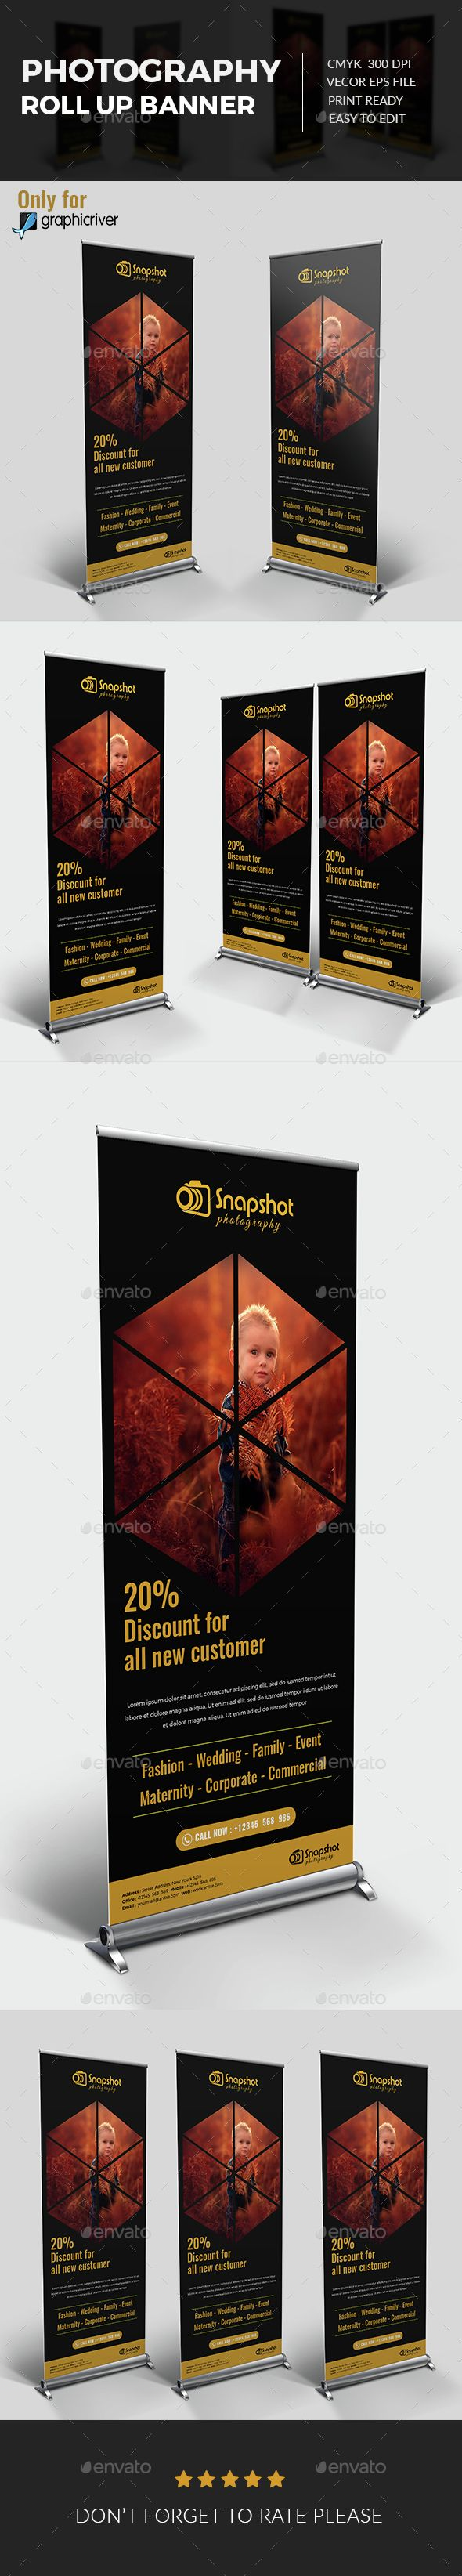 Photography Rollup Banner #photo #roll-up Download : graphicriver.net/...